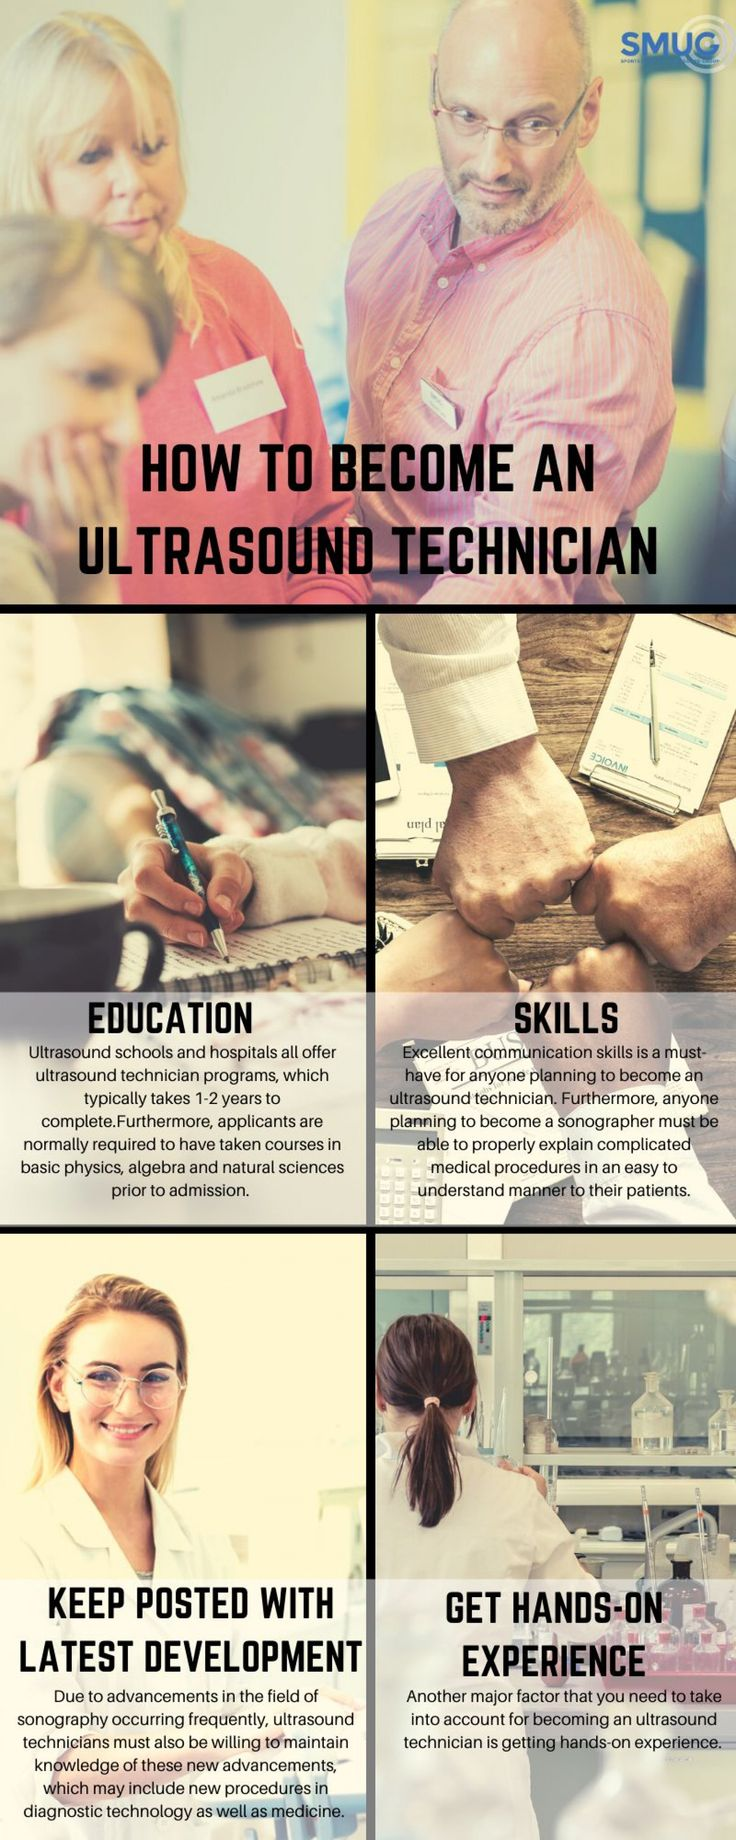 How to an ultrasound technician uk visually